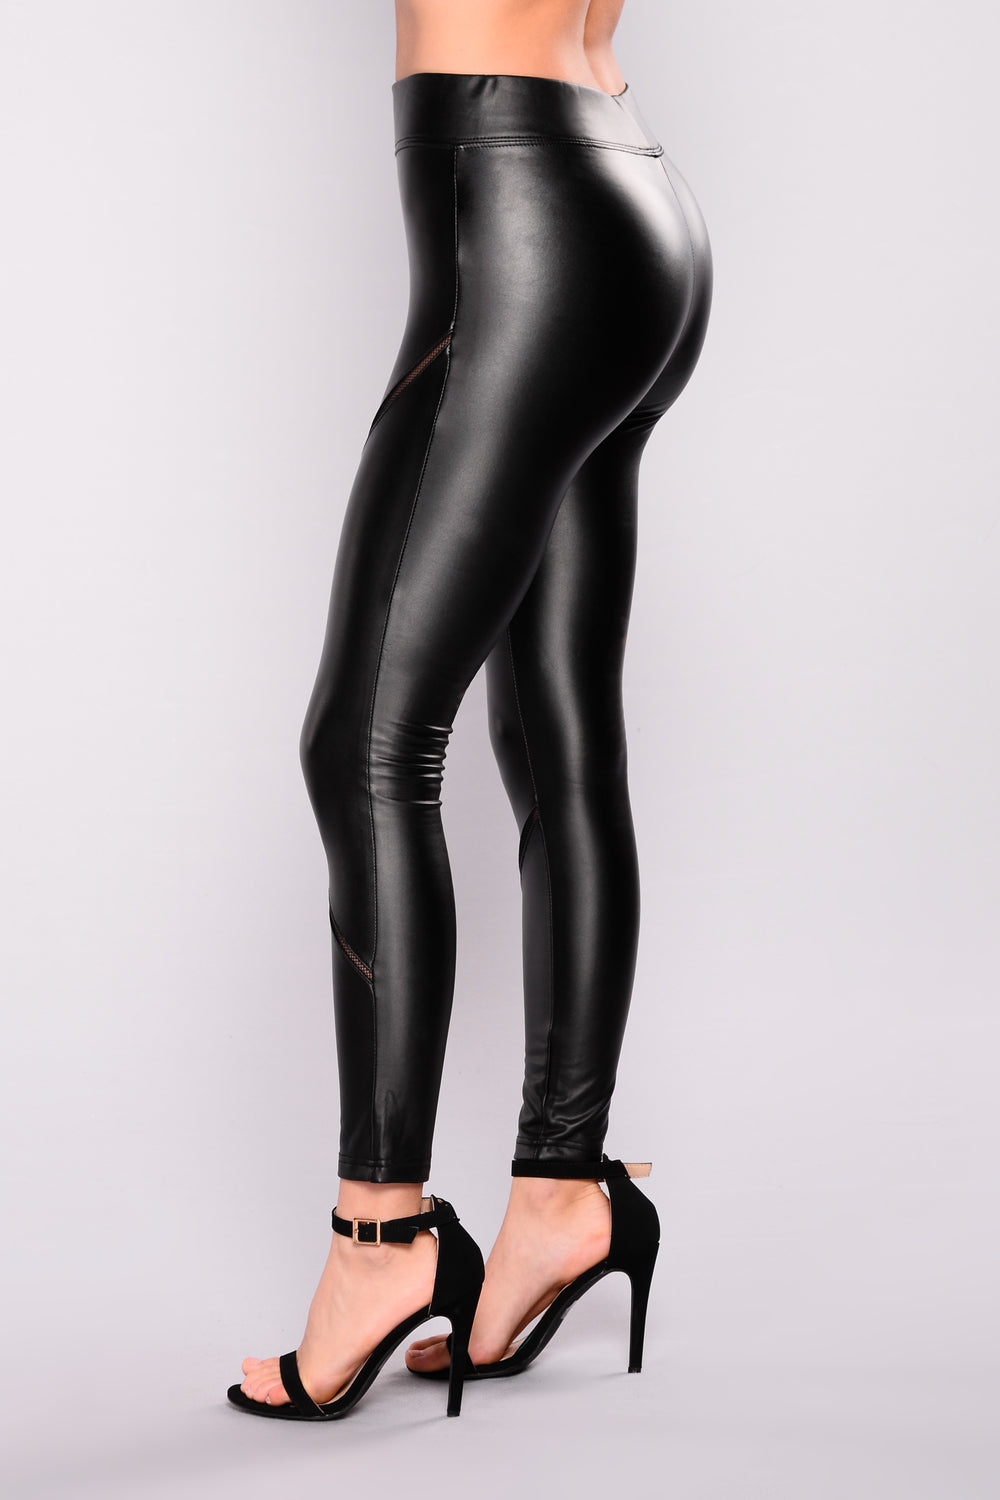 Dennis Basso Sz XXS Mixed Media Ponte Knit & Faux Leather Leggings Black Womens. Sold by Phoenix Trading Company. $ $ New-Fashion Sexy Black Wet Look Faux Leather Leggings Treggings Pants Shiny Tights. Sold by NewFashion. $ Lysse Leggings Alina Faux Leather .